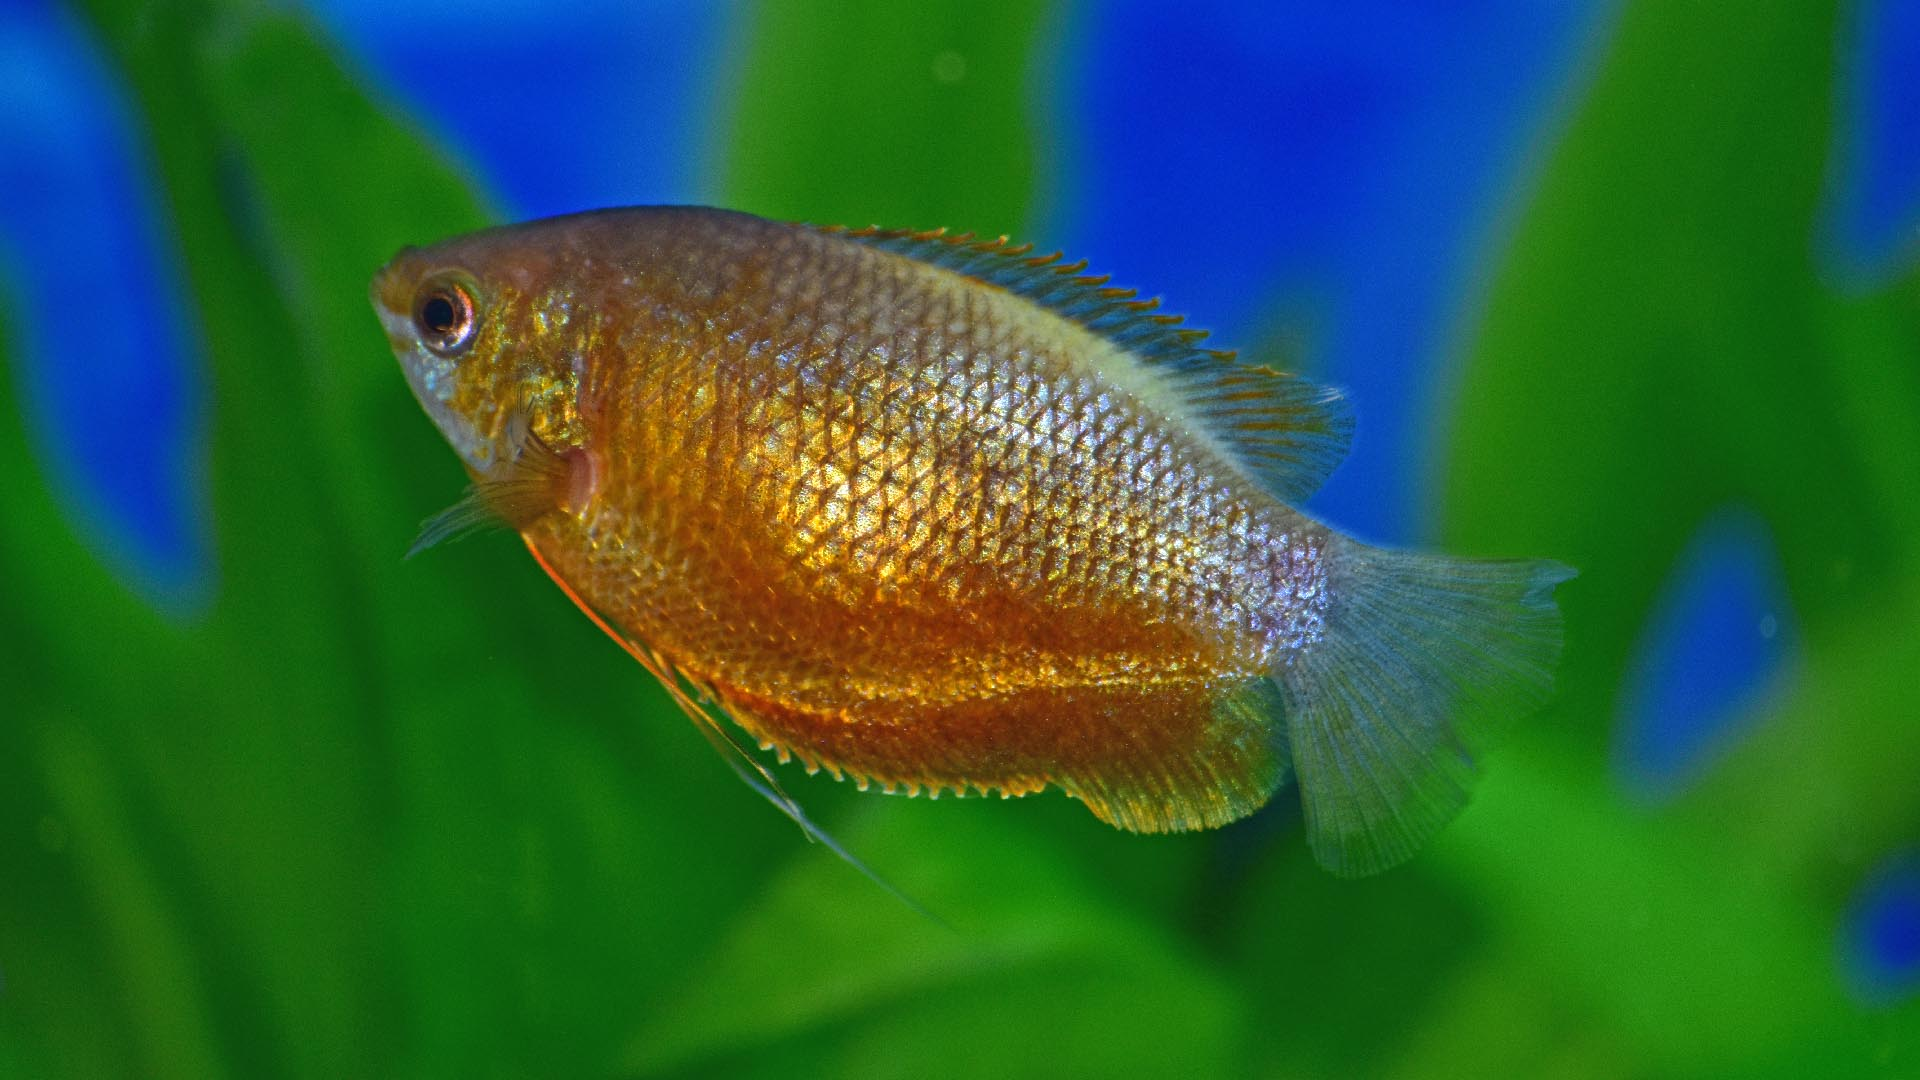 Gouramis, or gouramies, are a group of freshwater anabantiform fishes that comprise the family Osphronemidae. Wayne's AquaWorld